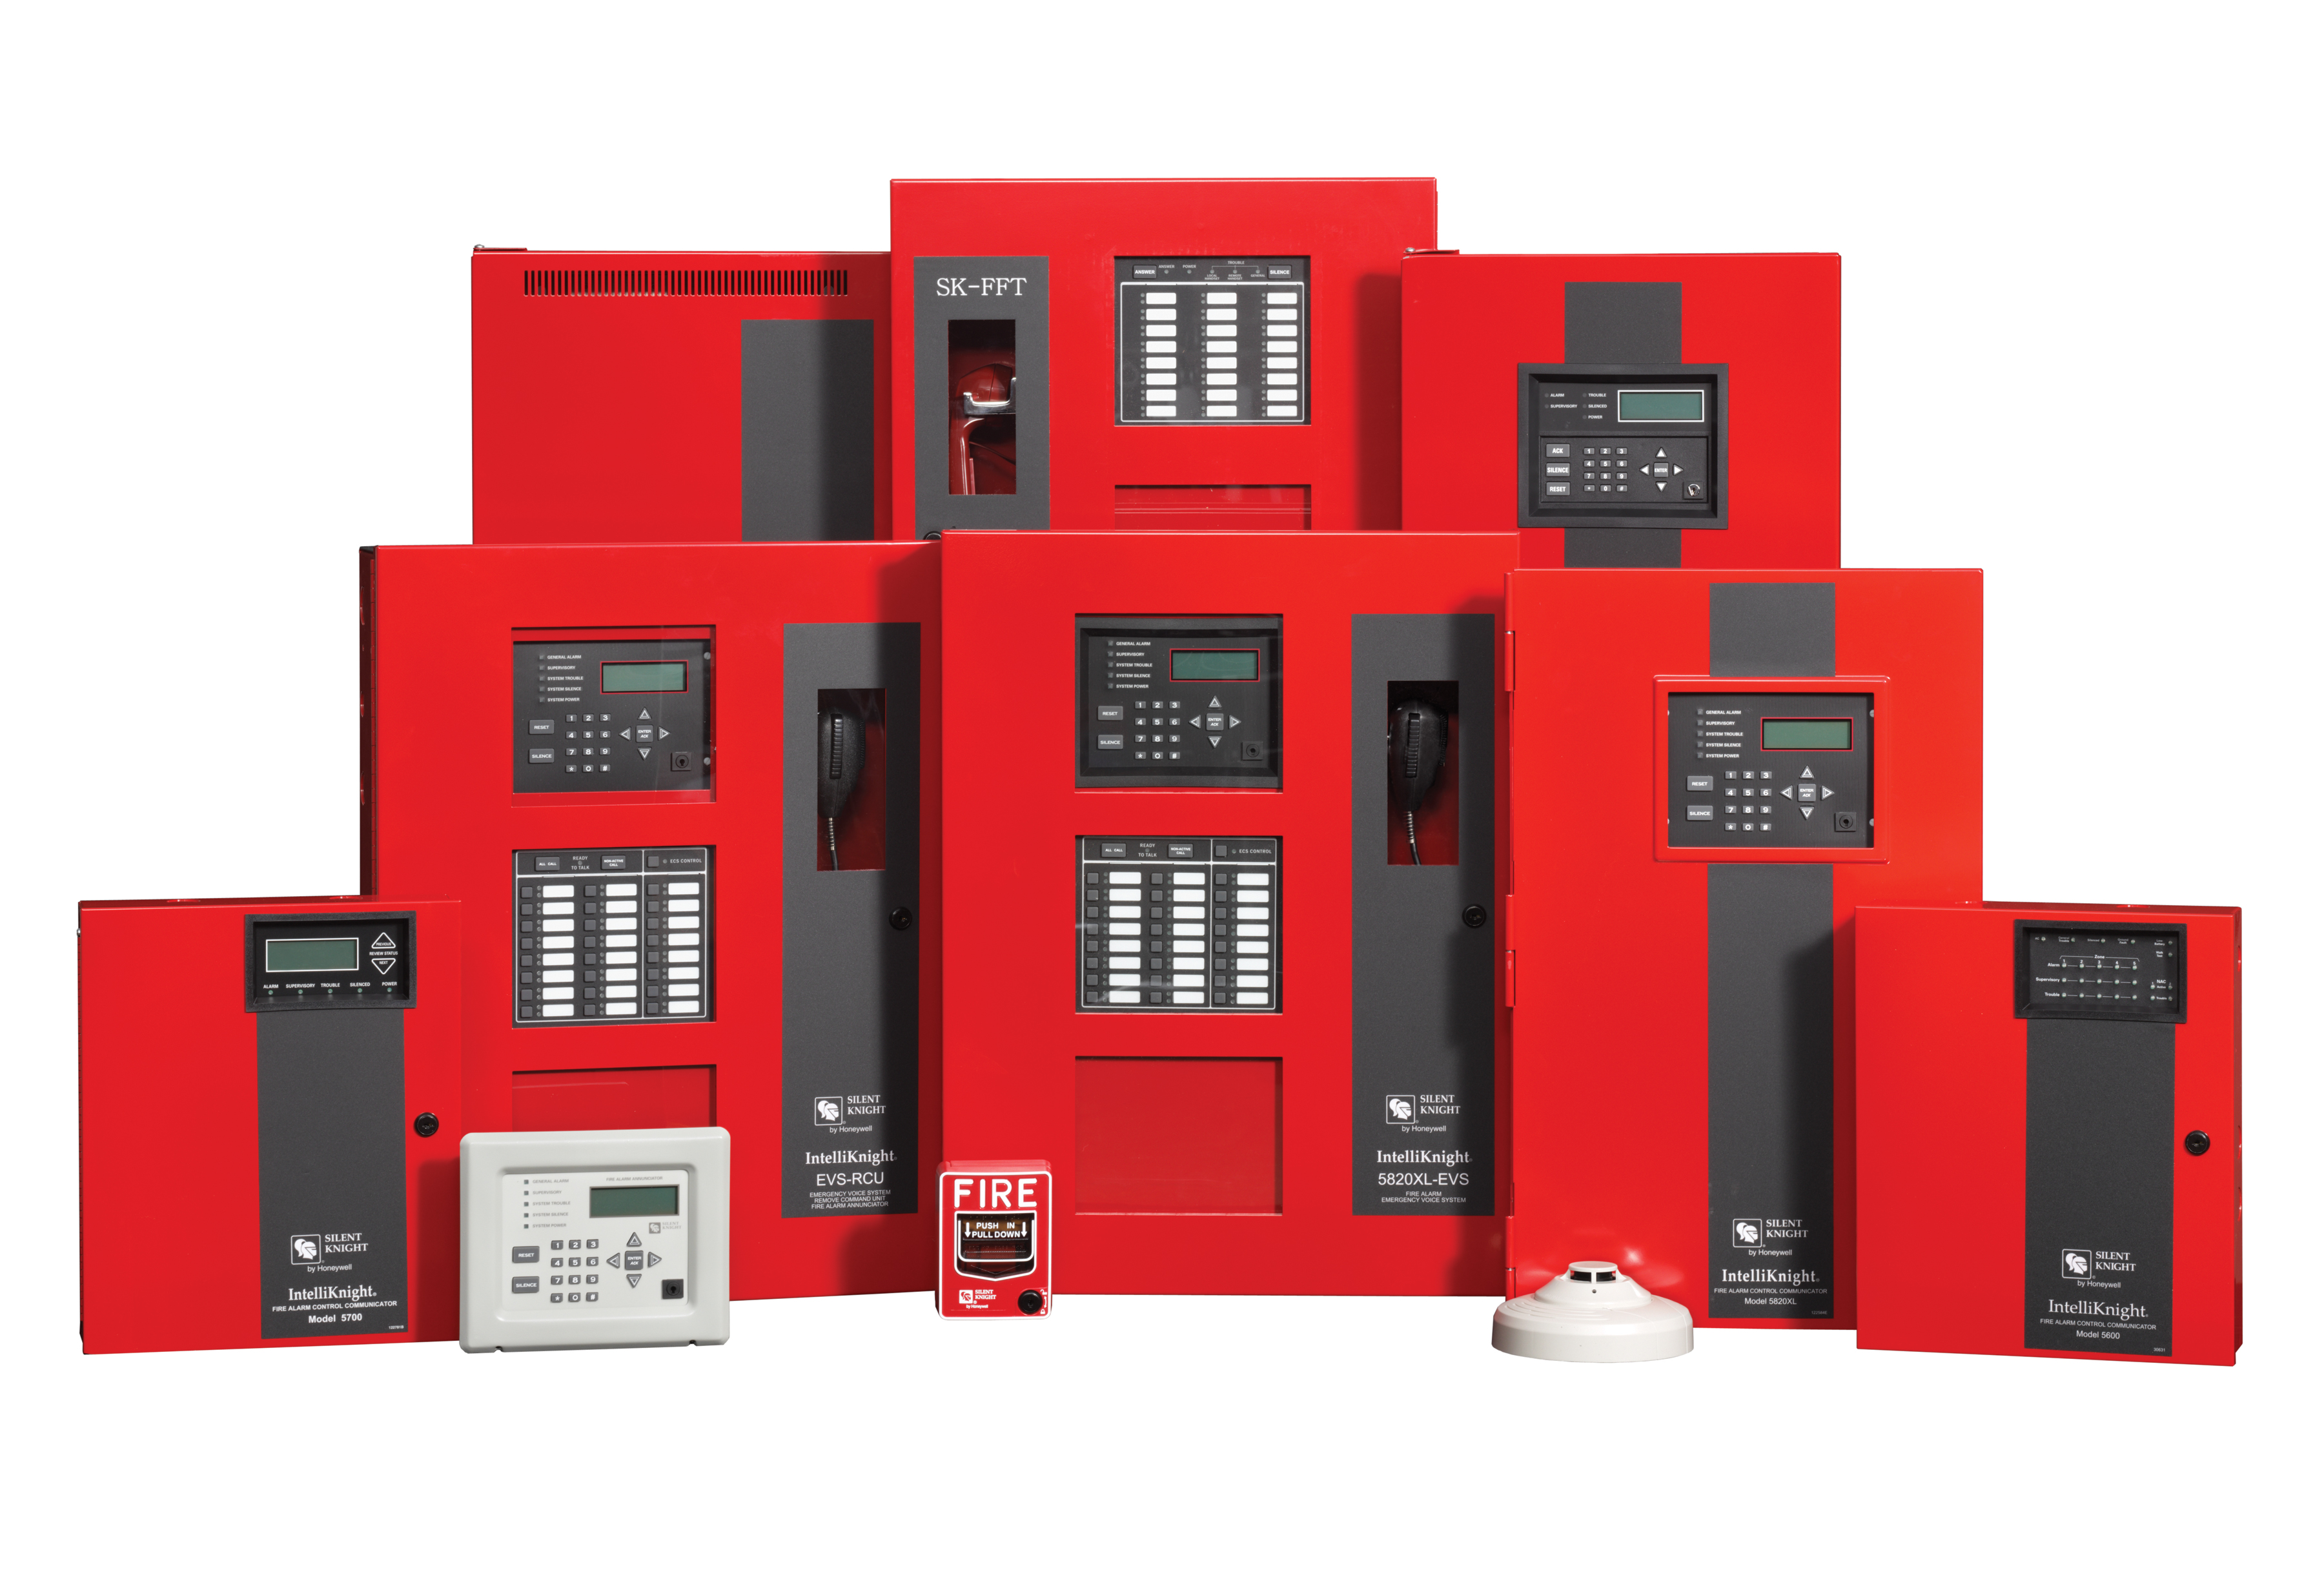 fire alarm installation repairs superior system services. Black Bedroom Furniture Sets. Home Design Ideas